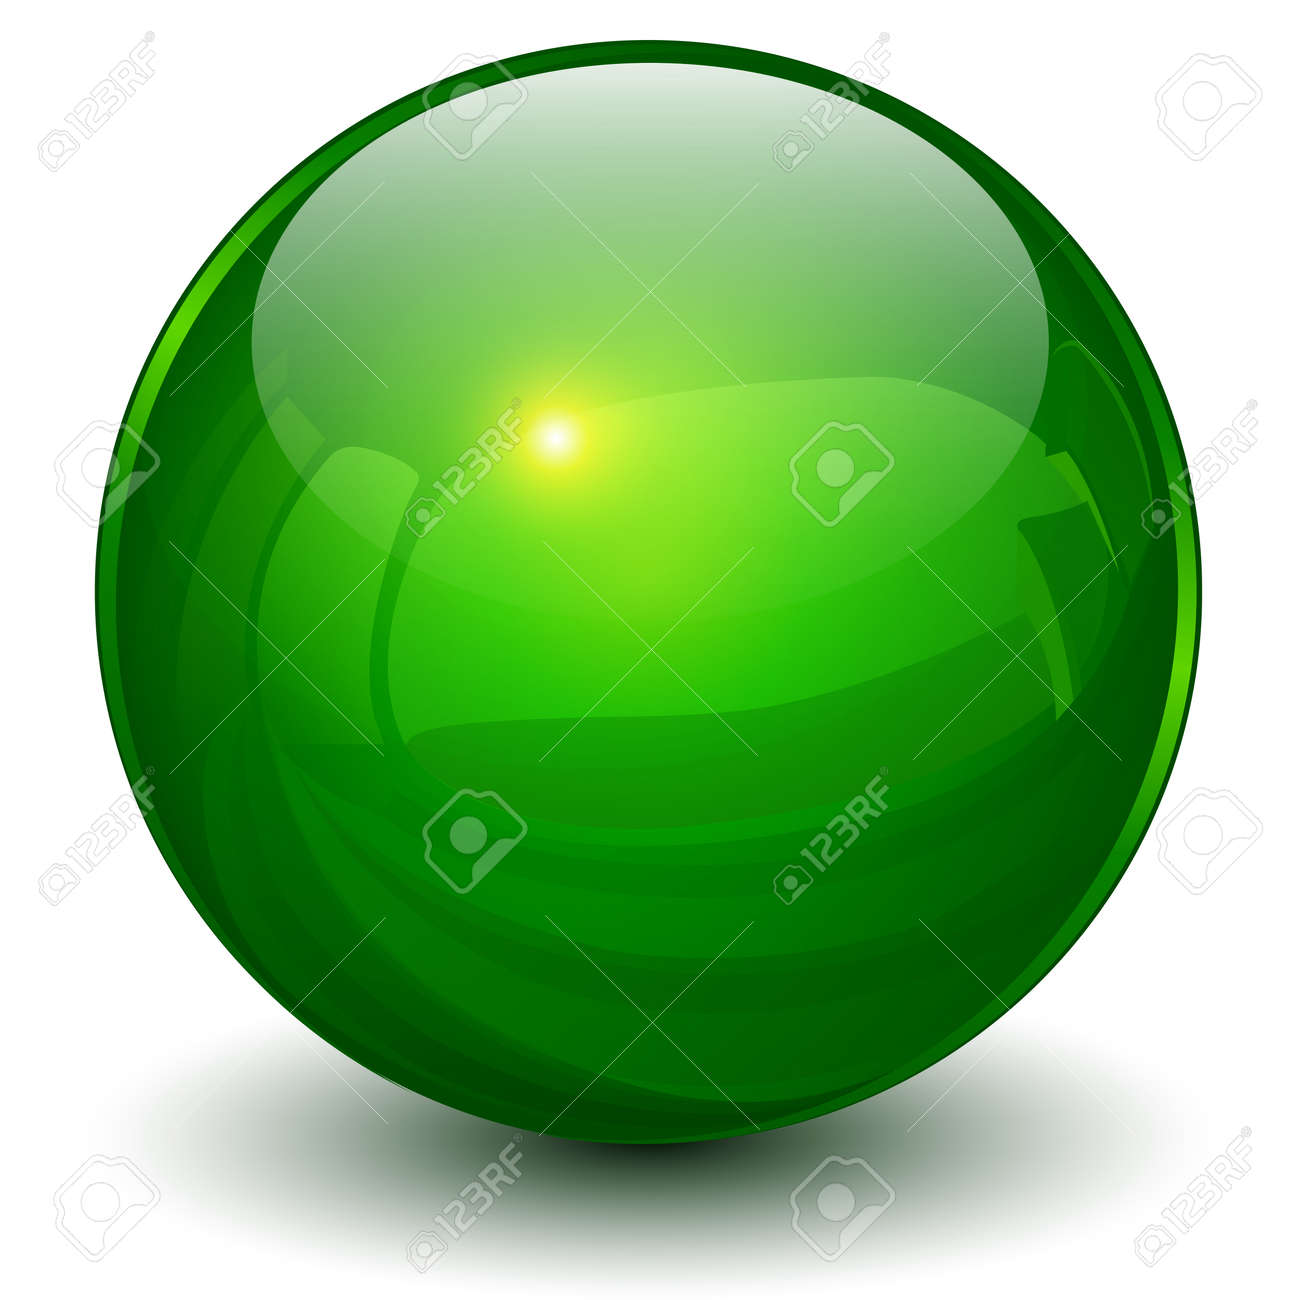 Glass sphere green, 3D ball icon shiny vector illustration. - 166116755